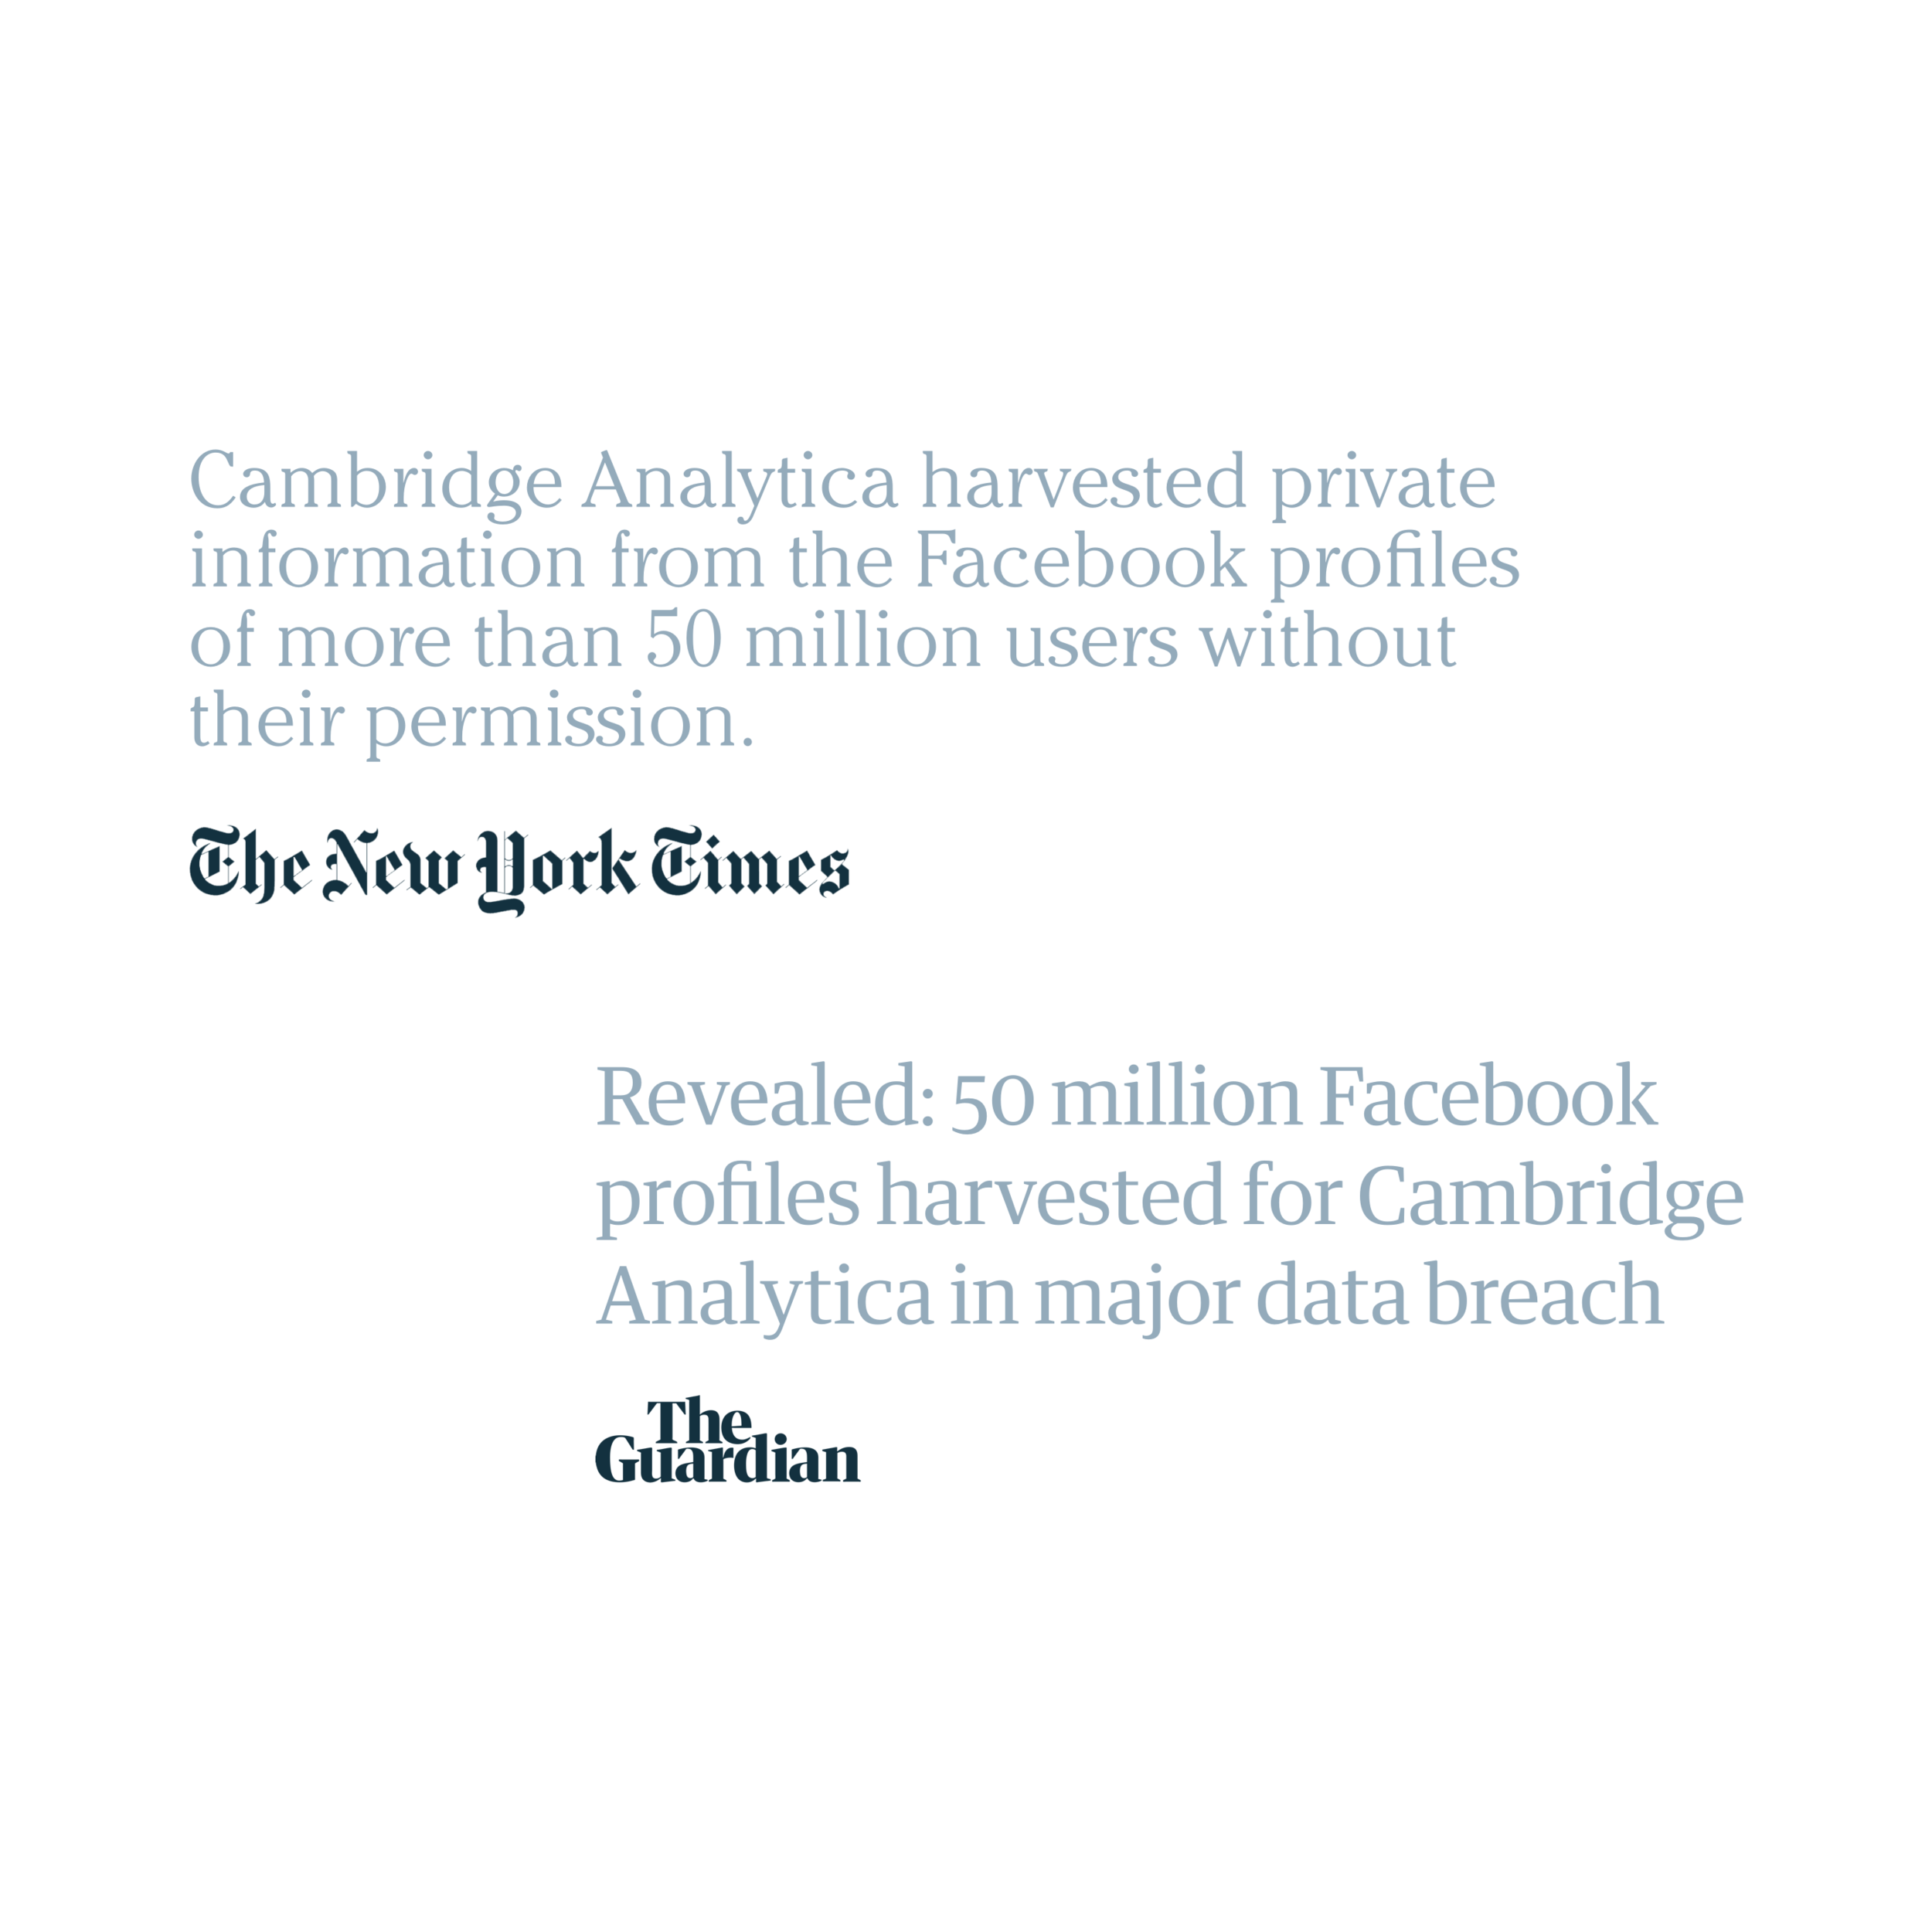 Data privacy blunders - Facebook has been involved in some major data privacy blunders, taking a big hit to the brand's credibility. Corporate messaging and organizational action aside, how they design the interface around privacy control will be crucial in recovering the lost trust and brand credibility.